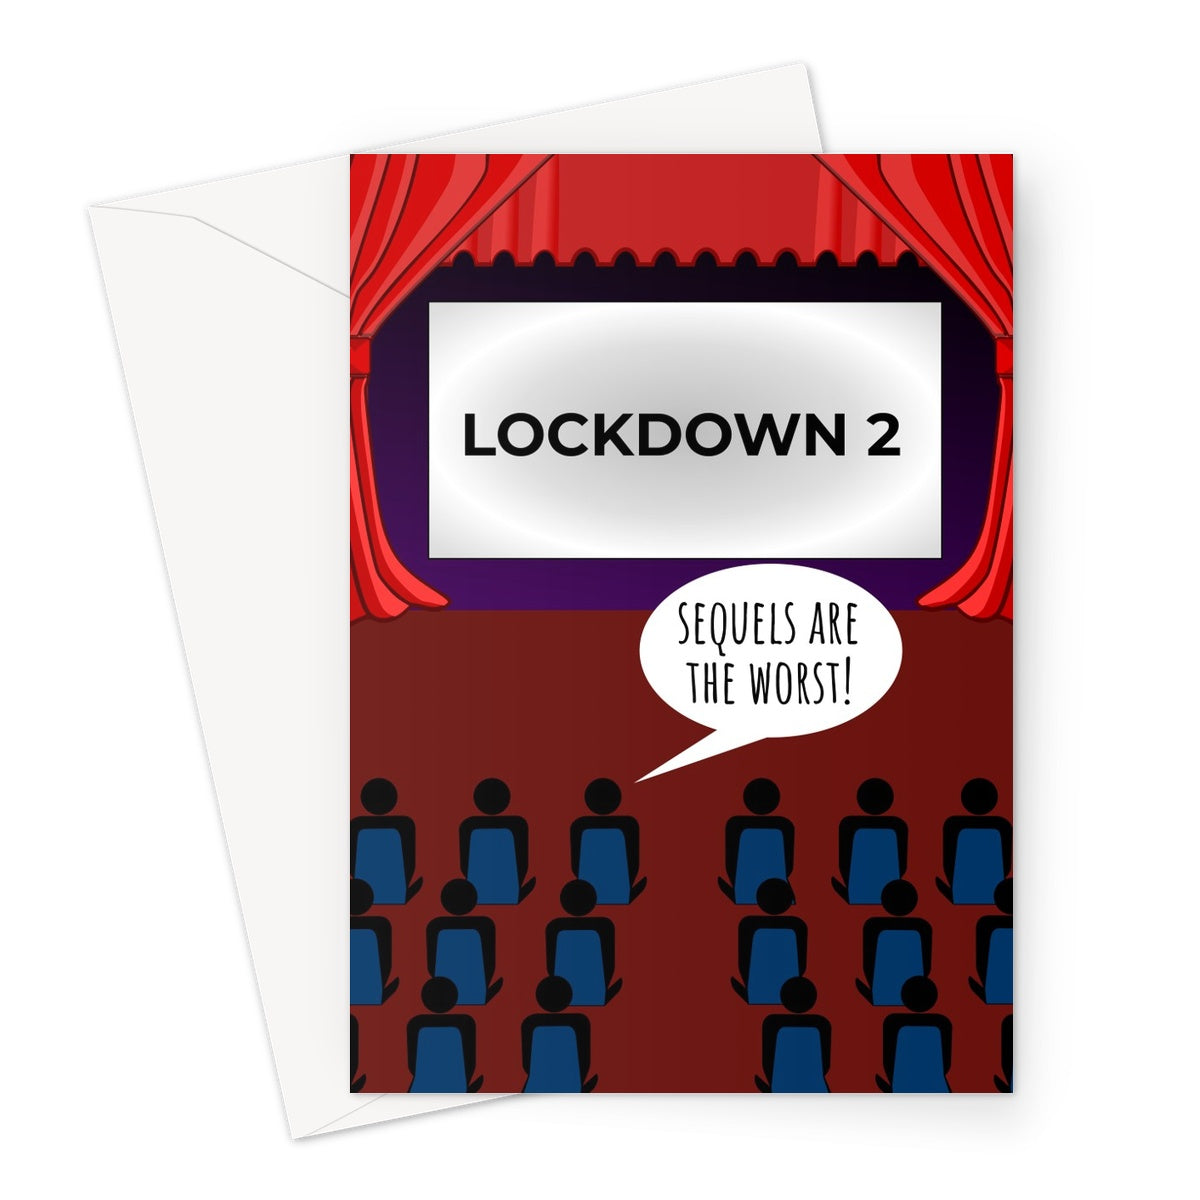 LOCKDOWN 2 - Sequels are the Worst Cinema Funny Pun Meme Pandemic Virus Birthday Christmas Anniversary Greeting Card